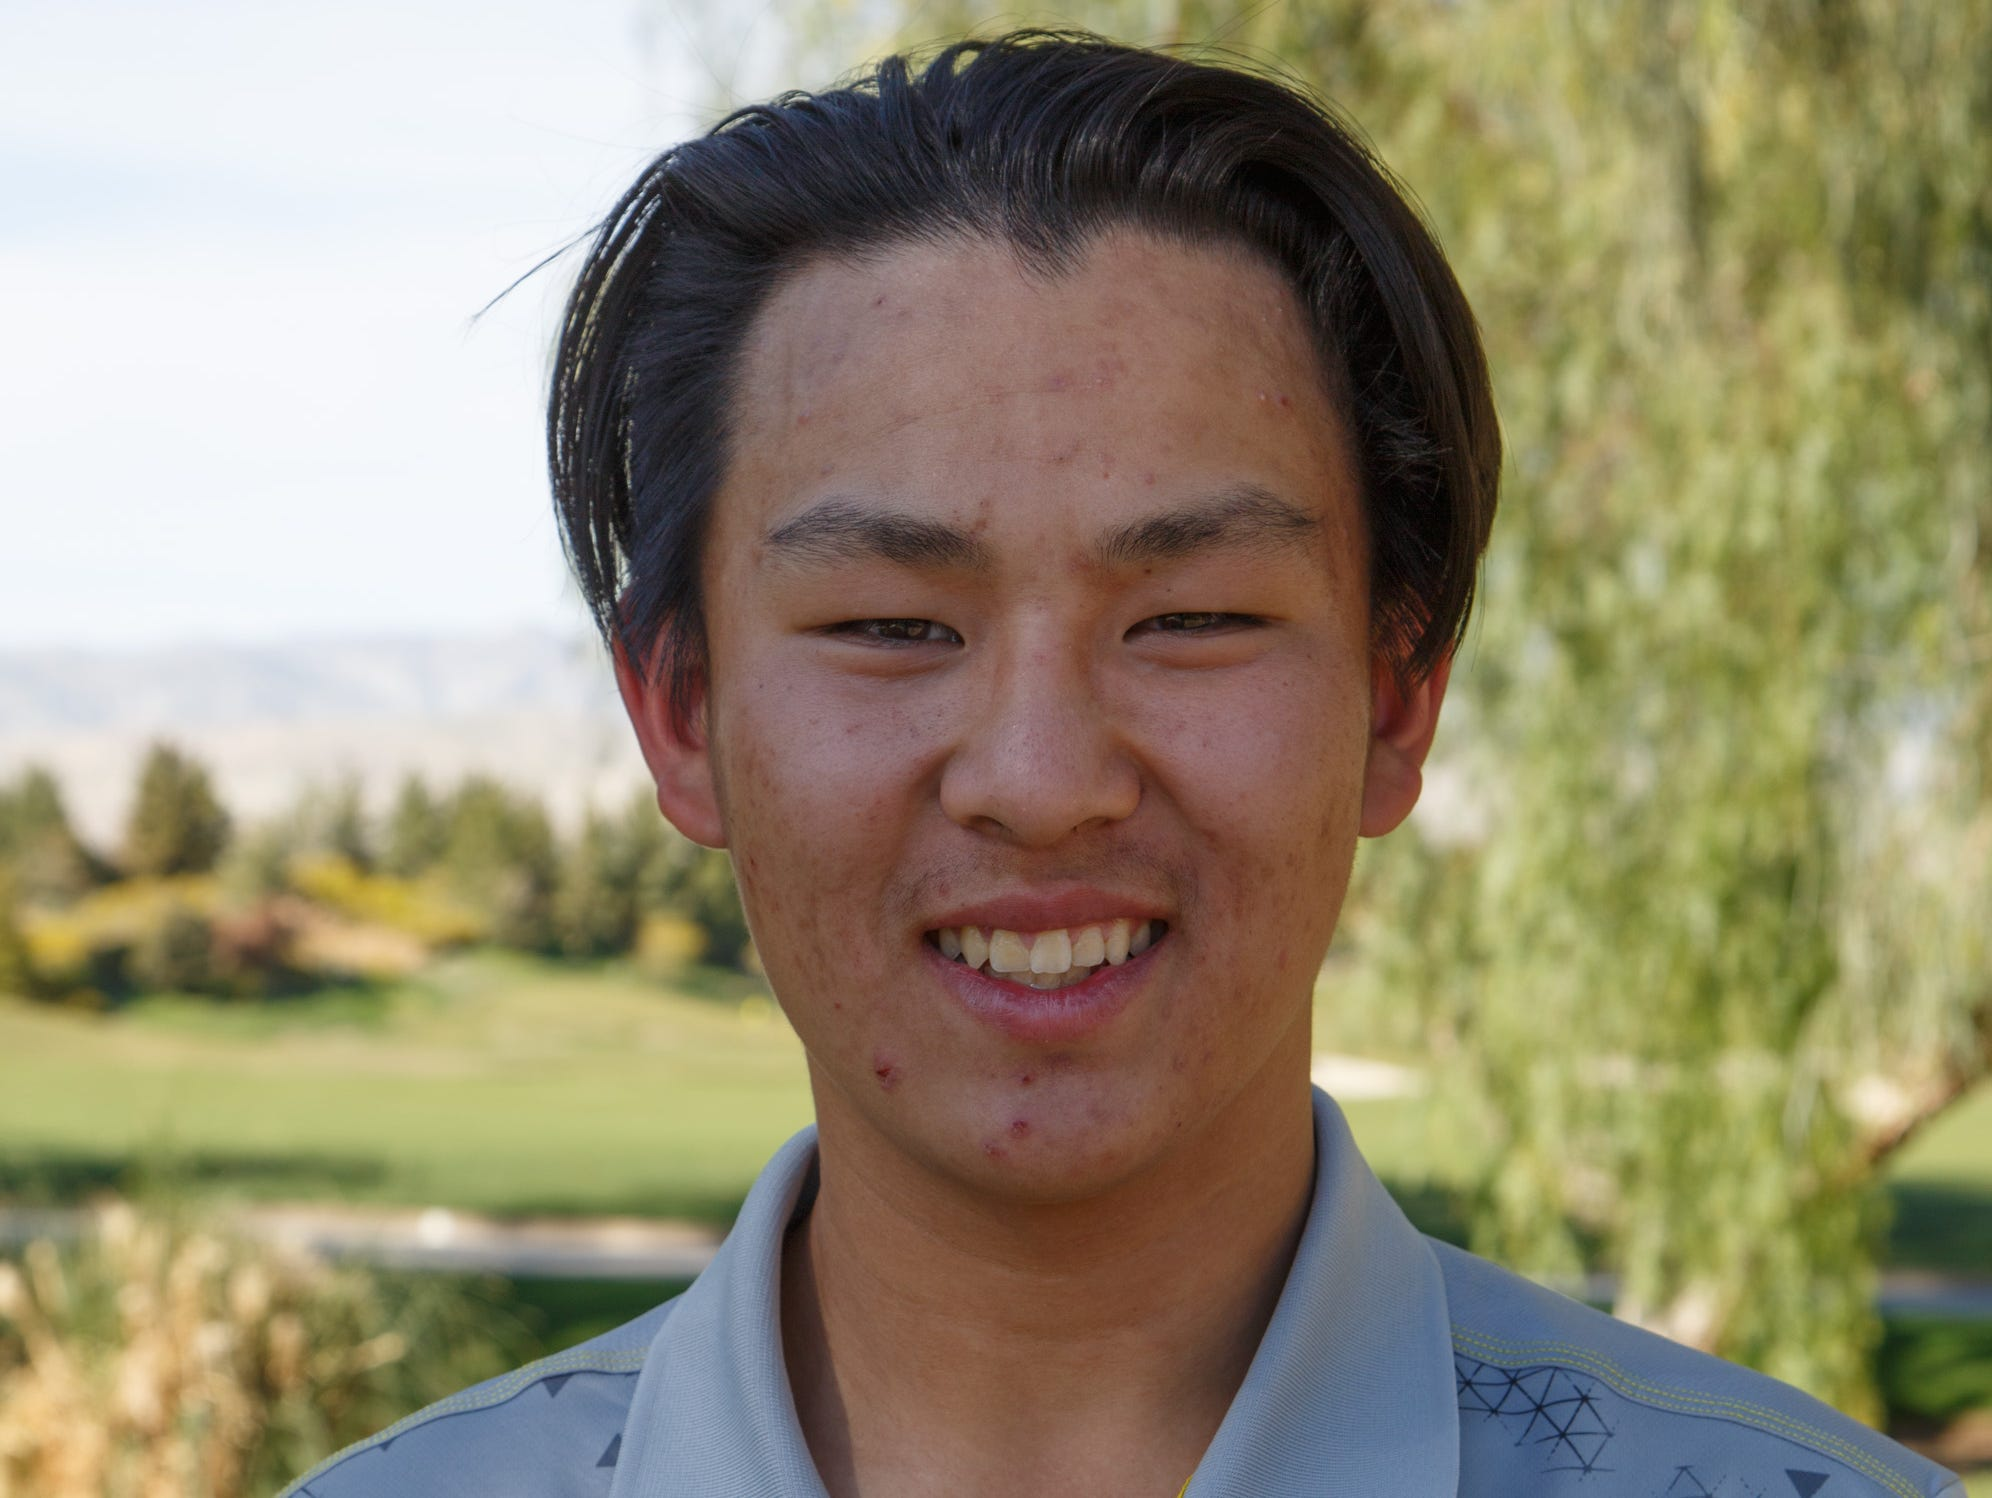 Derrick Liu of Palm Desert poses for a photograph, Tuesday, March 7, 2017.